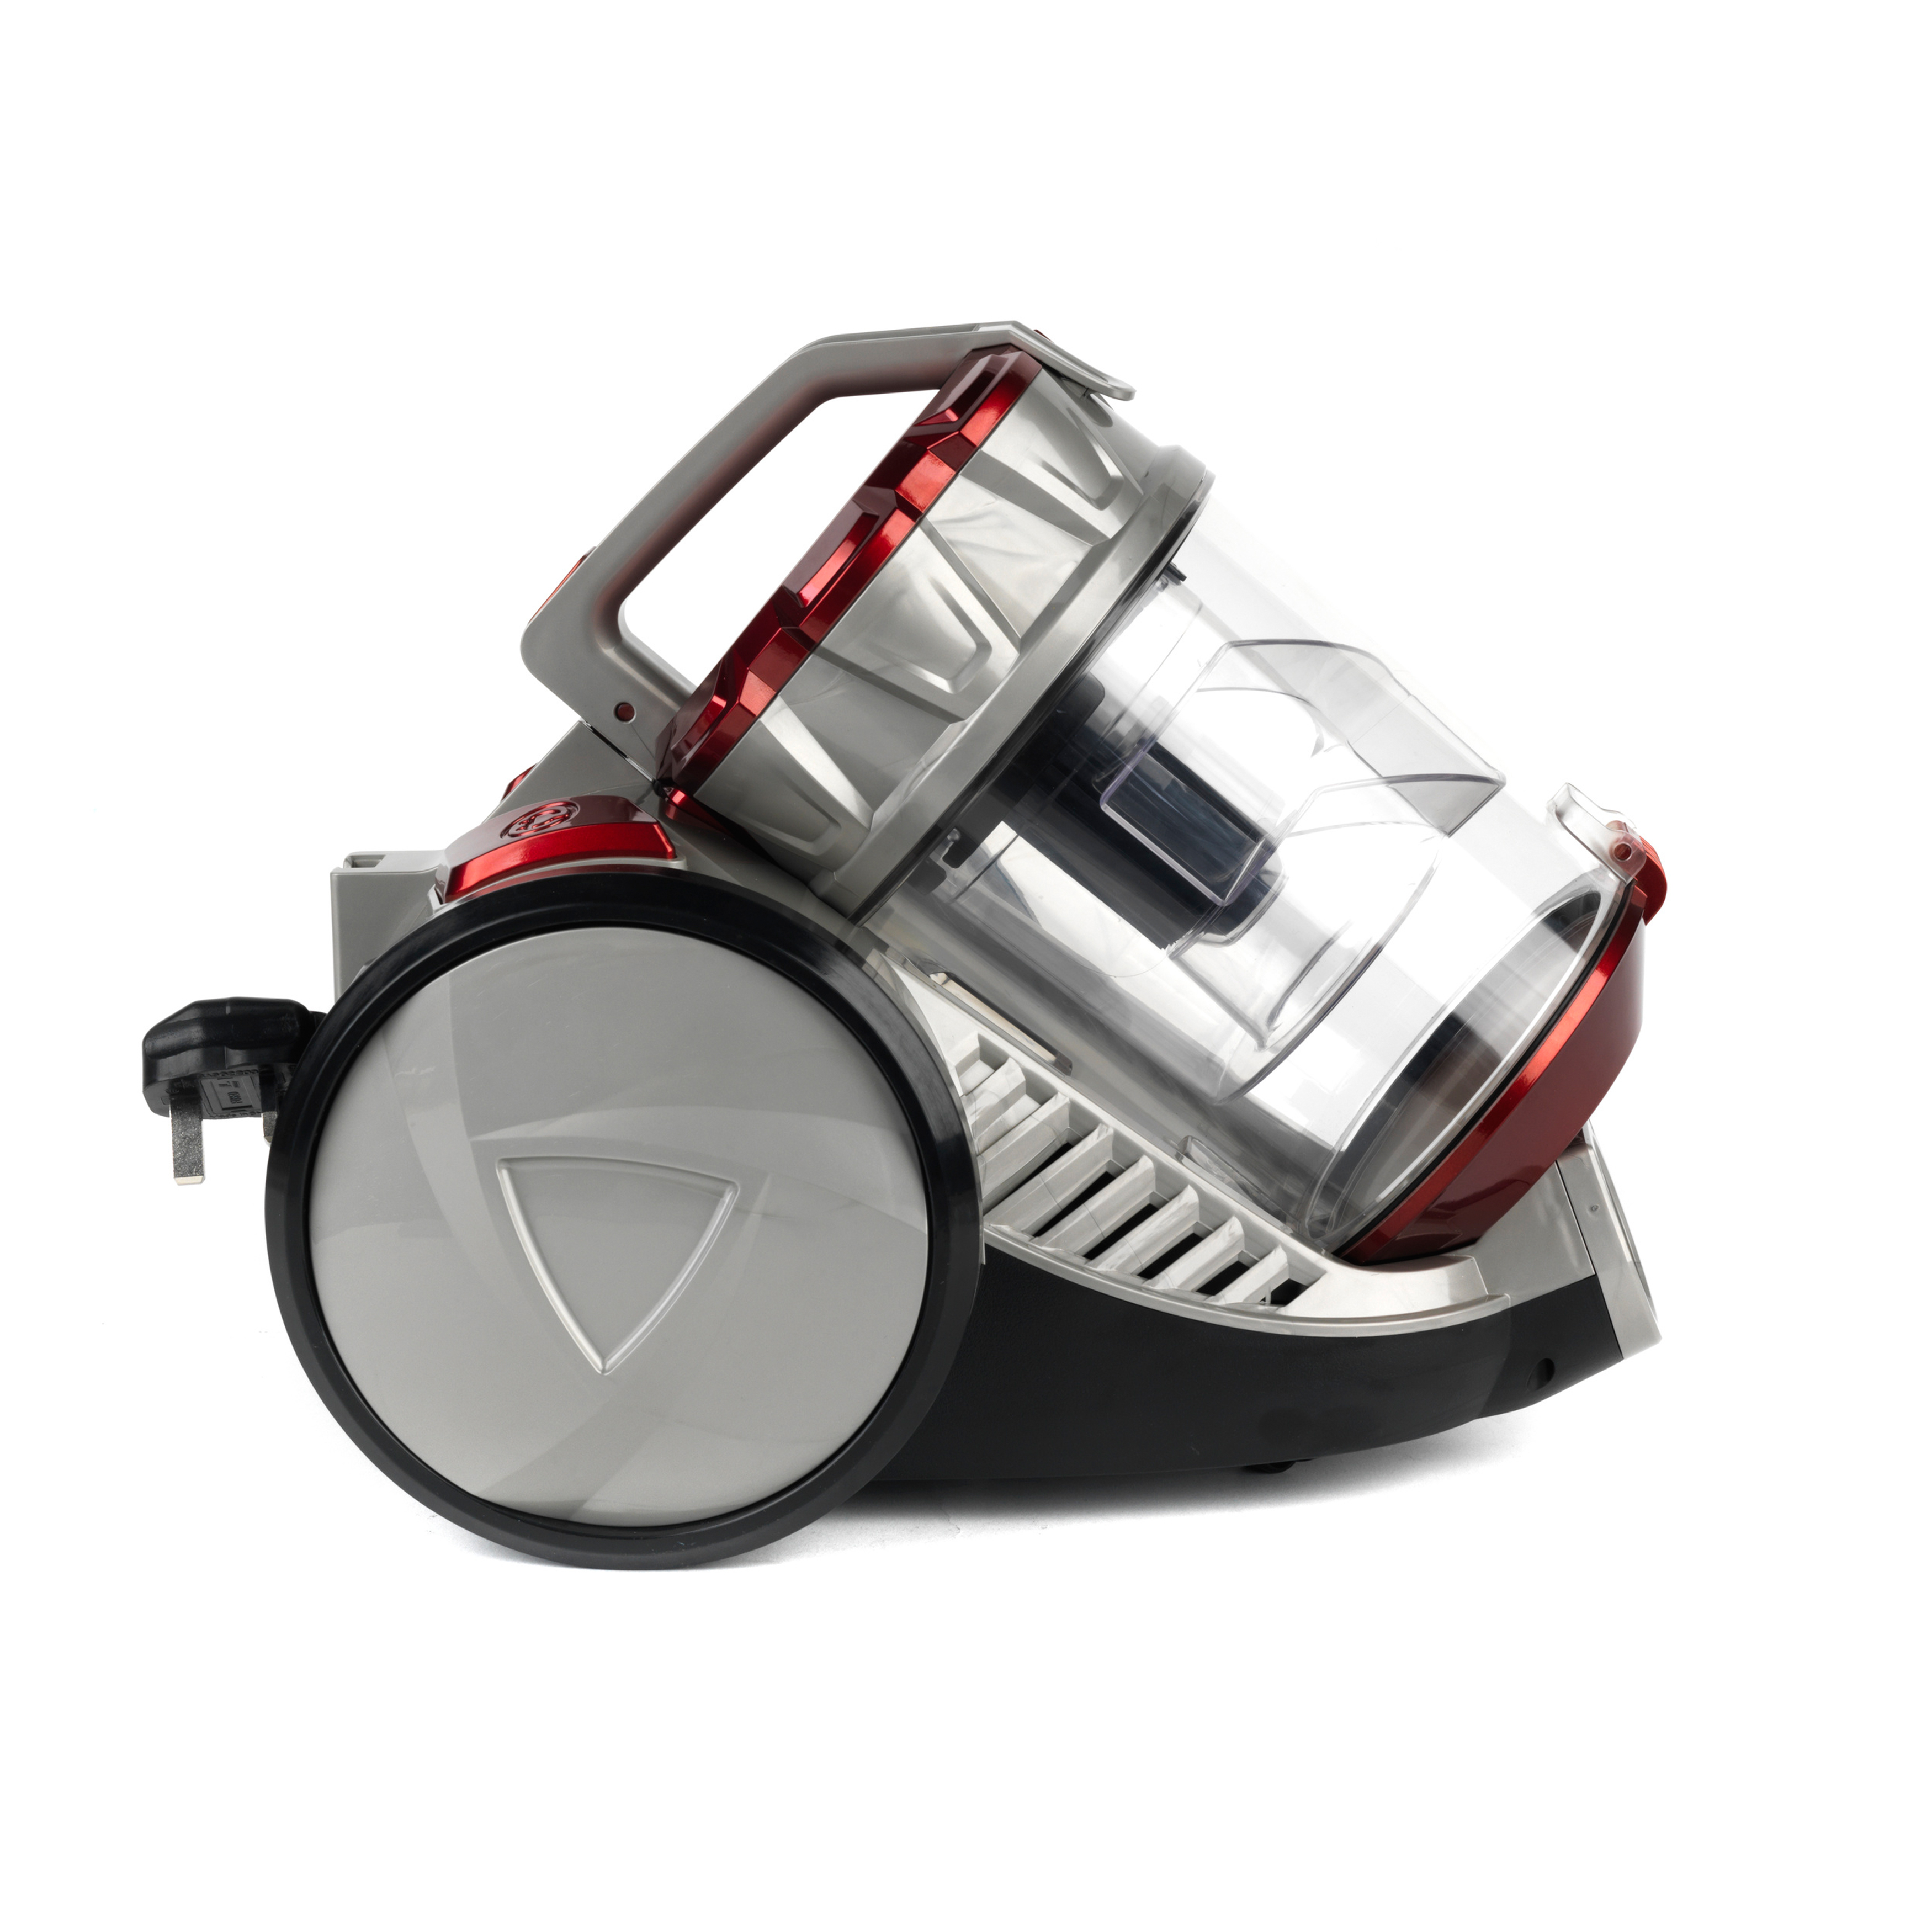 Beldray Compact Cylinder Dual Cyclonic Pet Plus Vacuum Cleaner, 700 W, Red